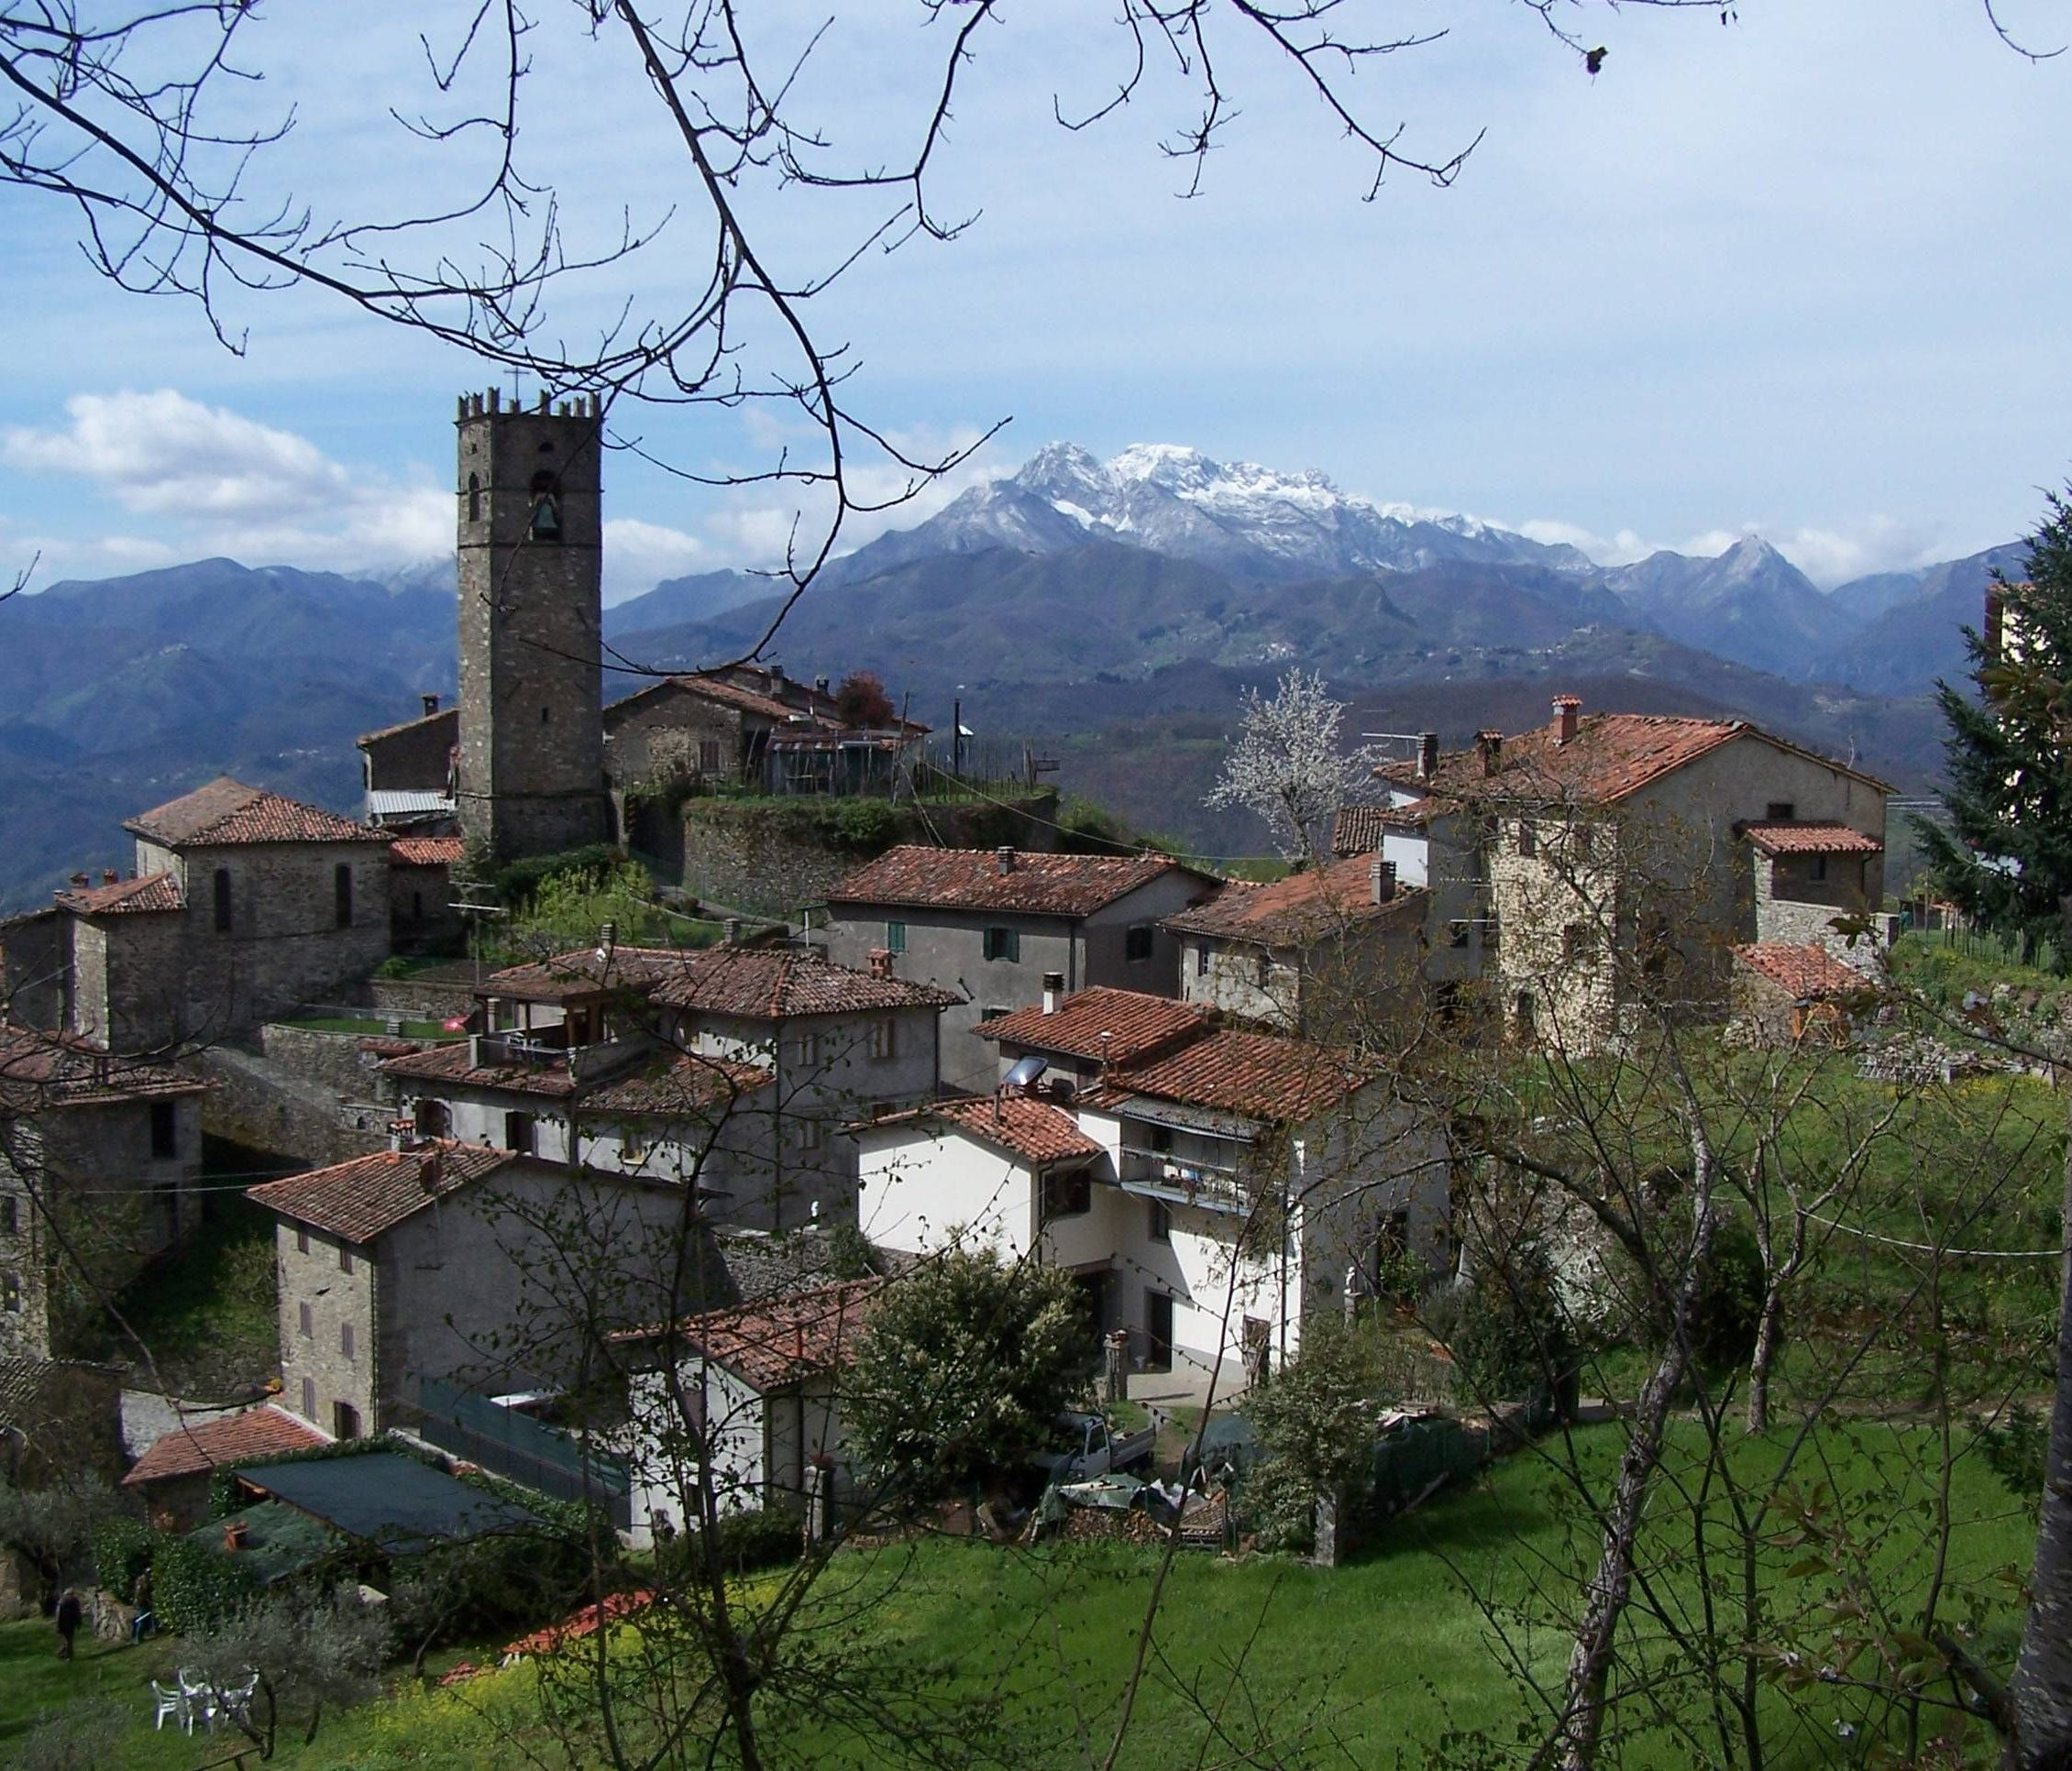 Lupinaia, population 67, features a soaring, turreted bell tower and hosts an annual chestnut harvest that draws thousands of culinary pilgrims each November.